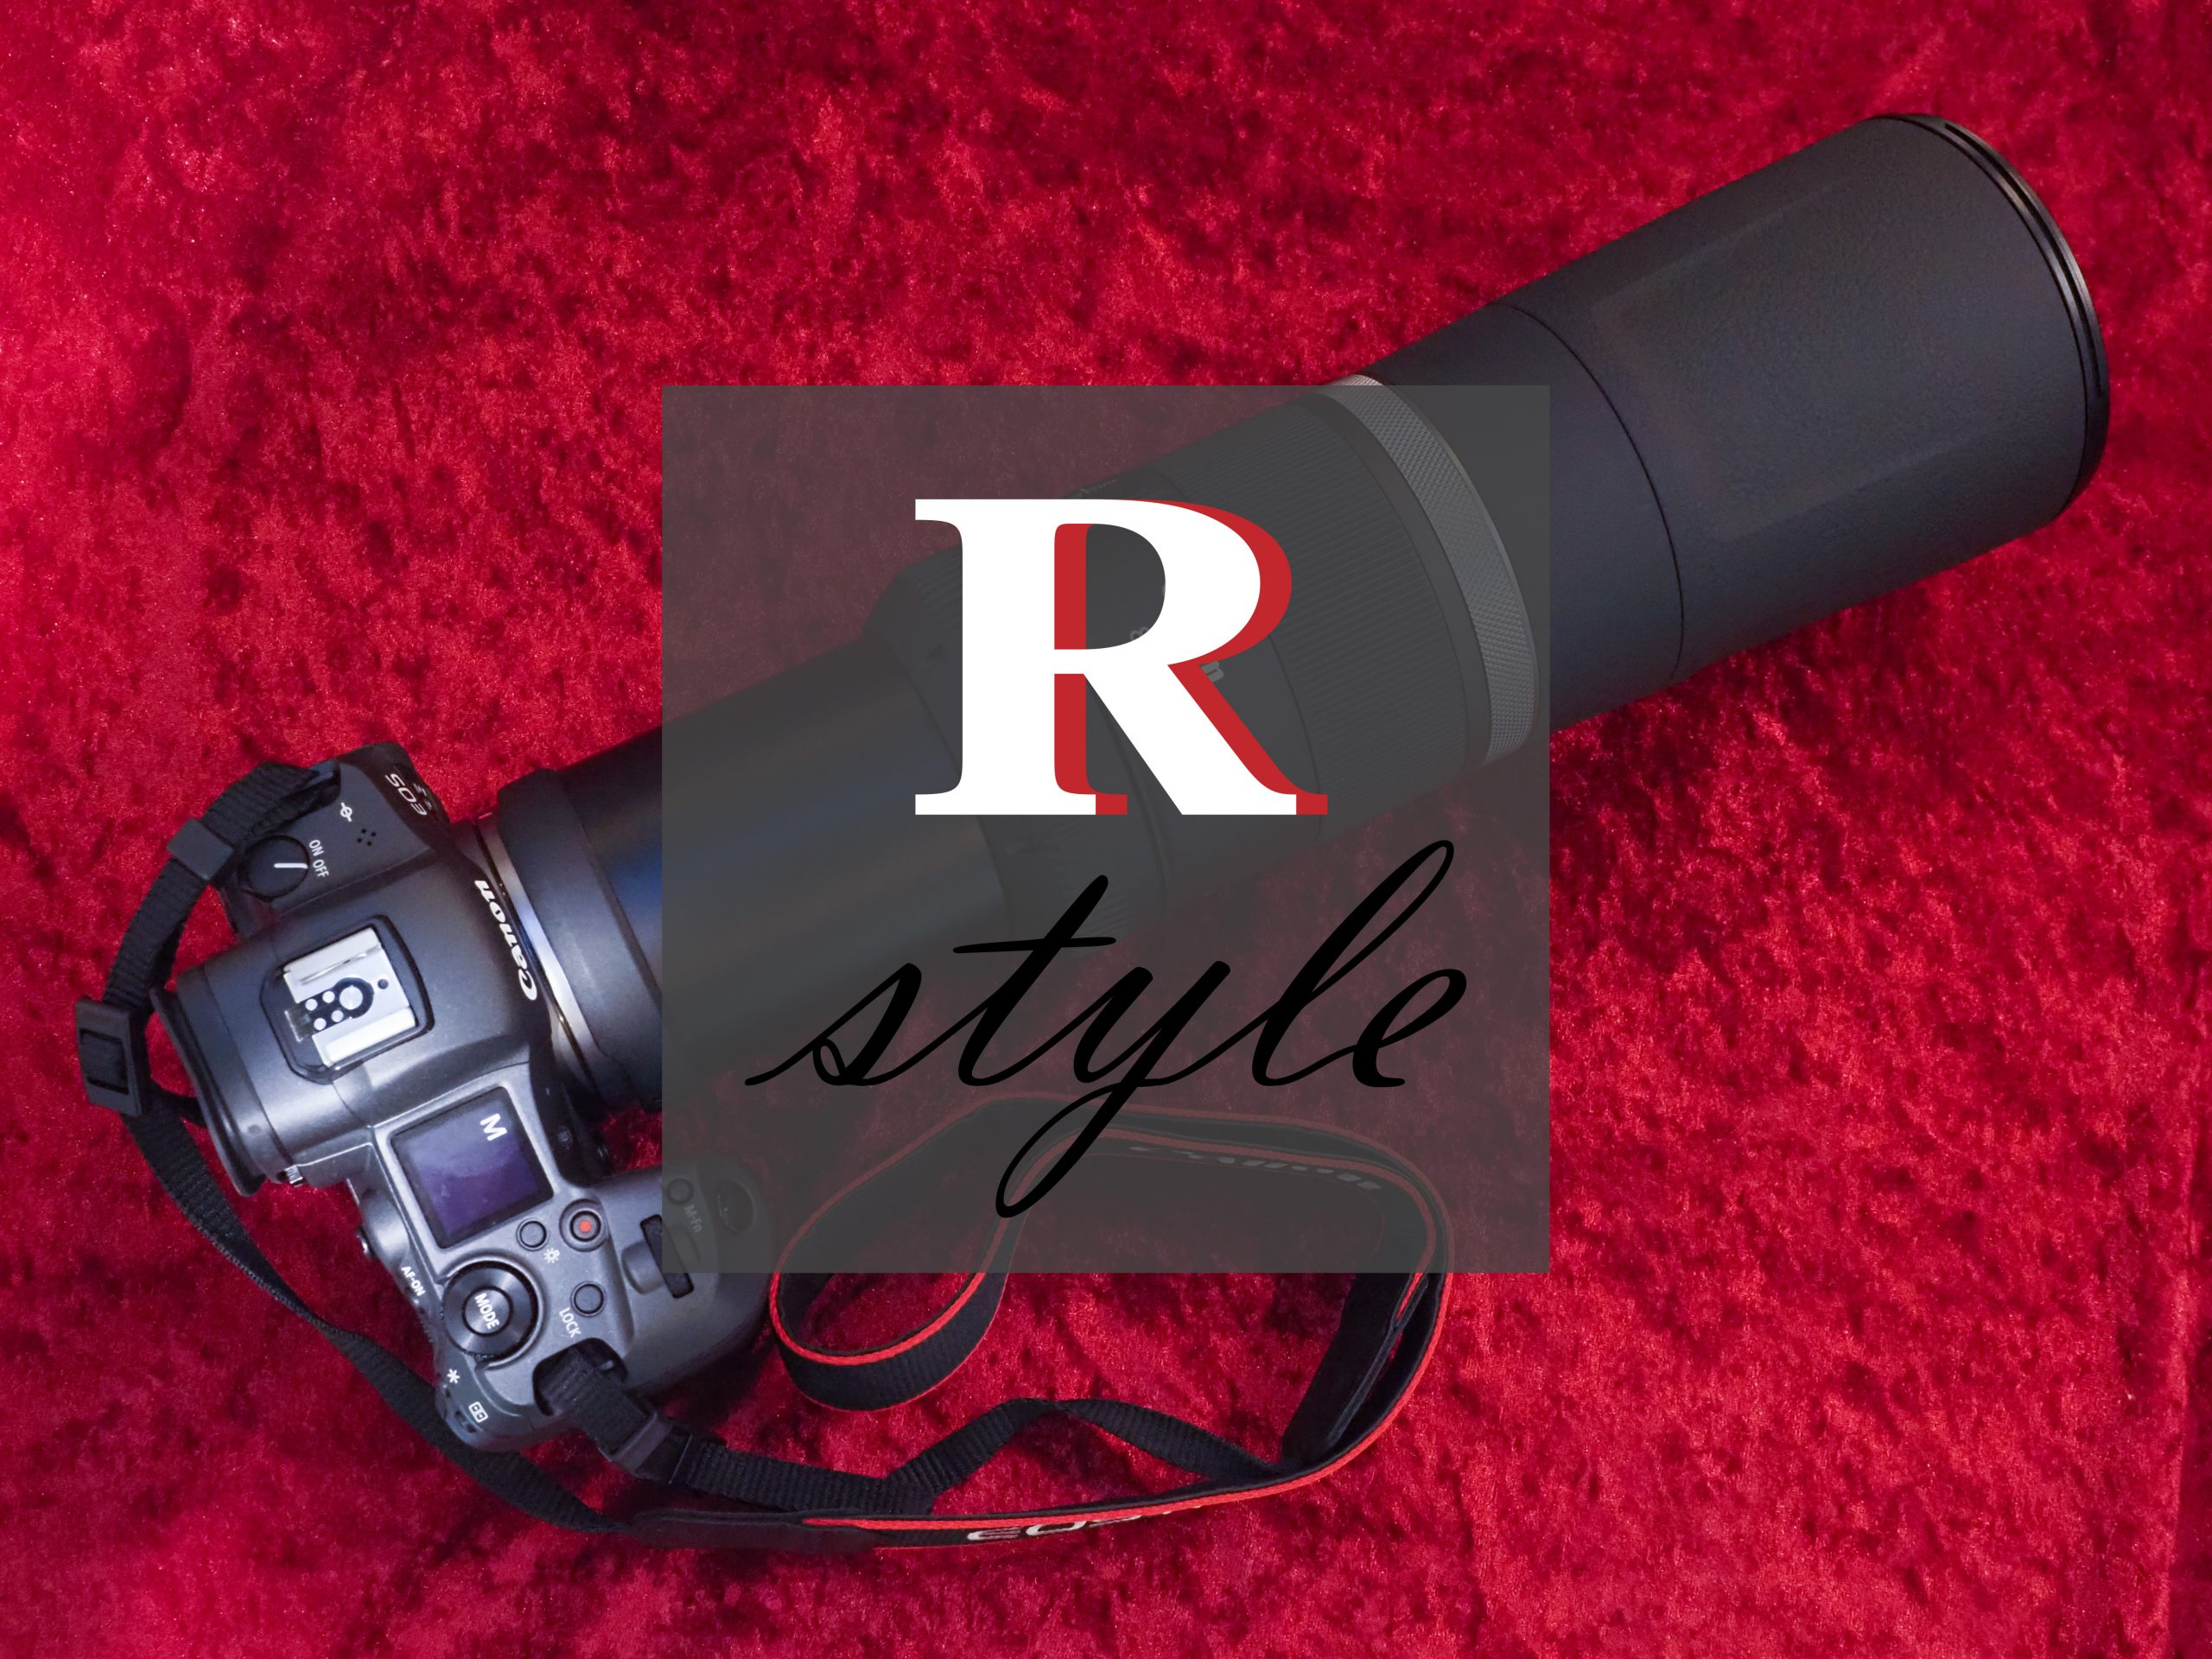 【Canon】R STYLE ~RF800mm F11 STM~